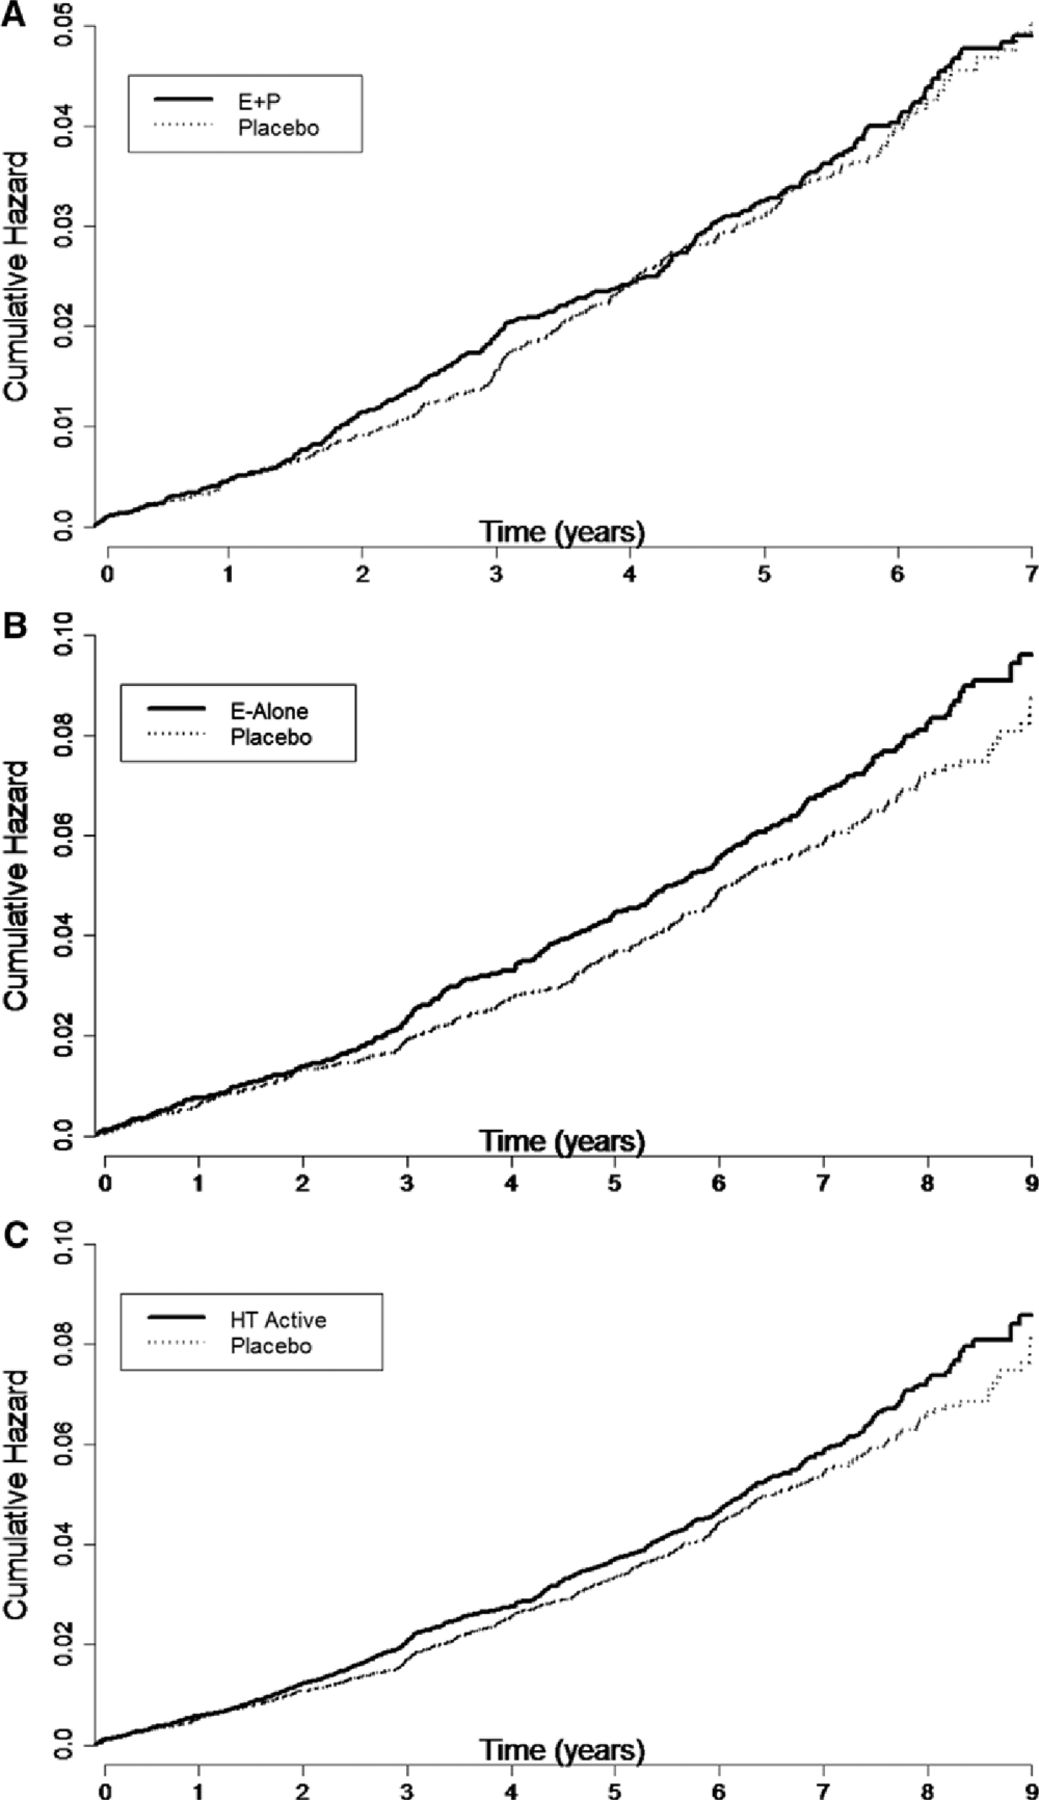 Effects of Postmenopausal Hormone Therapy on Incident Atrial Fibrillation |  Circulation: Arrhythmia and Electrophysiology